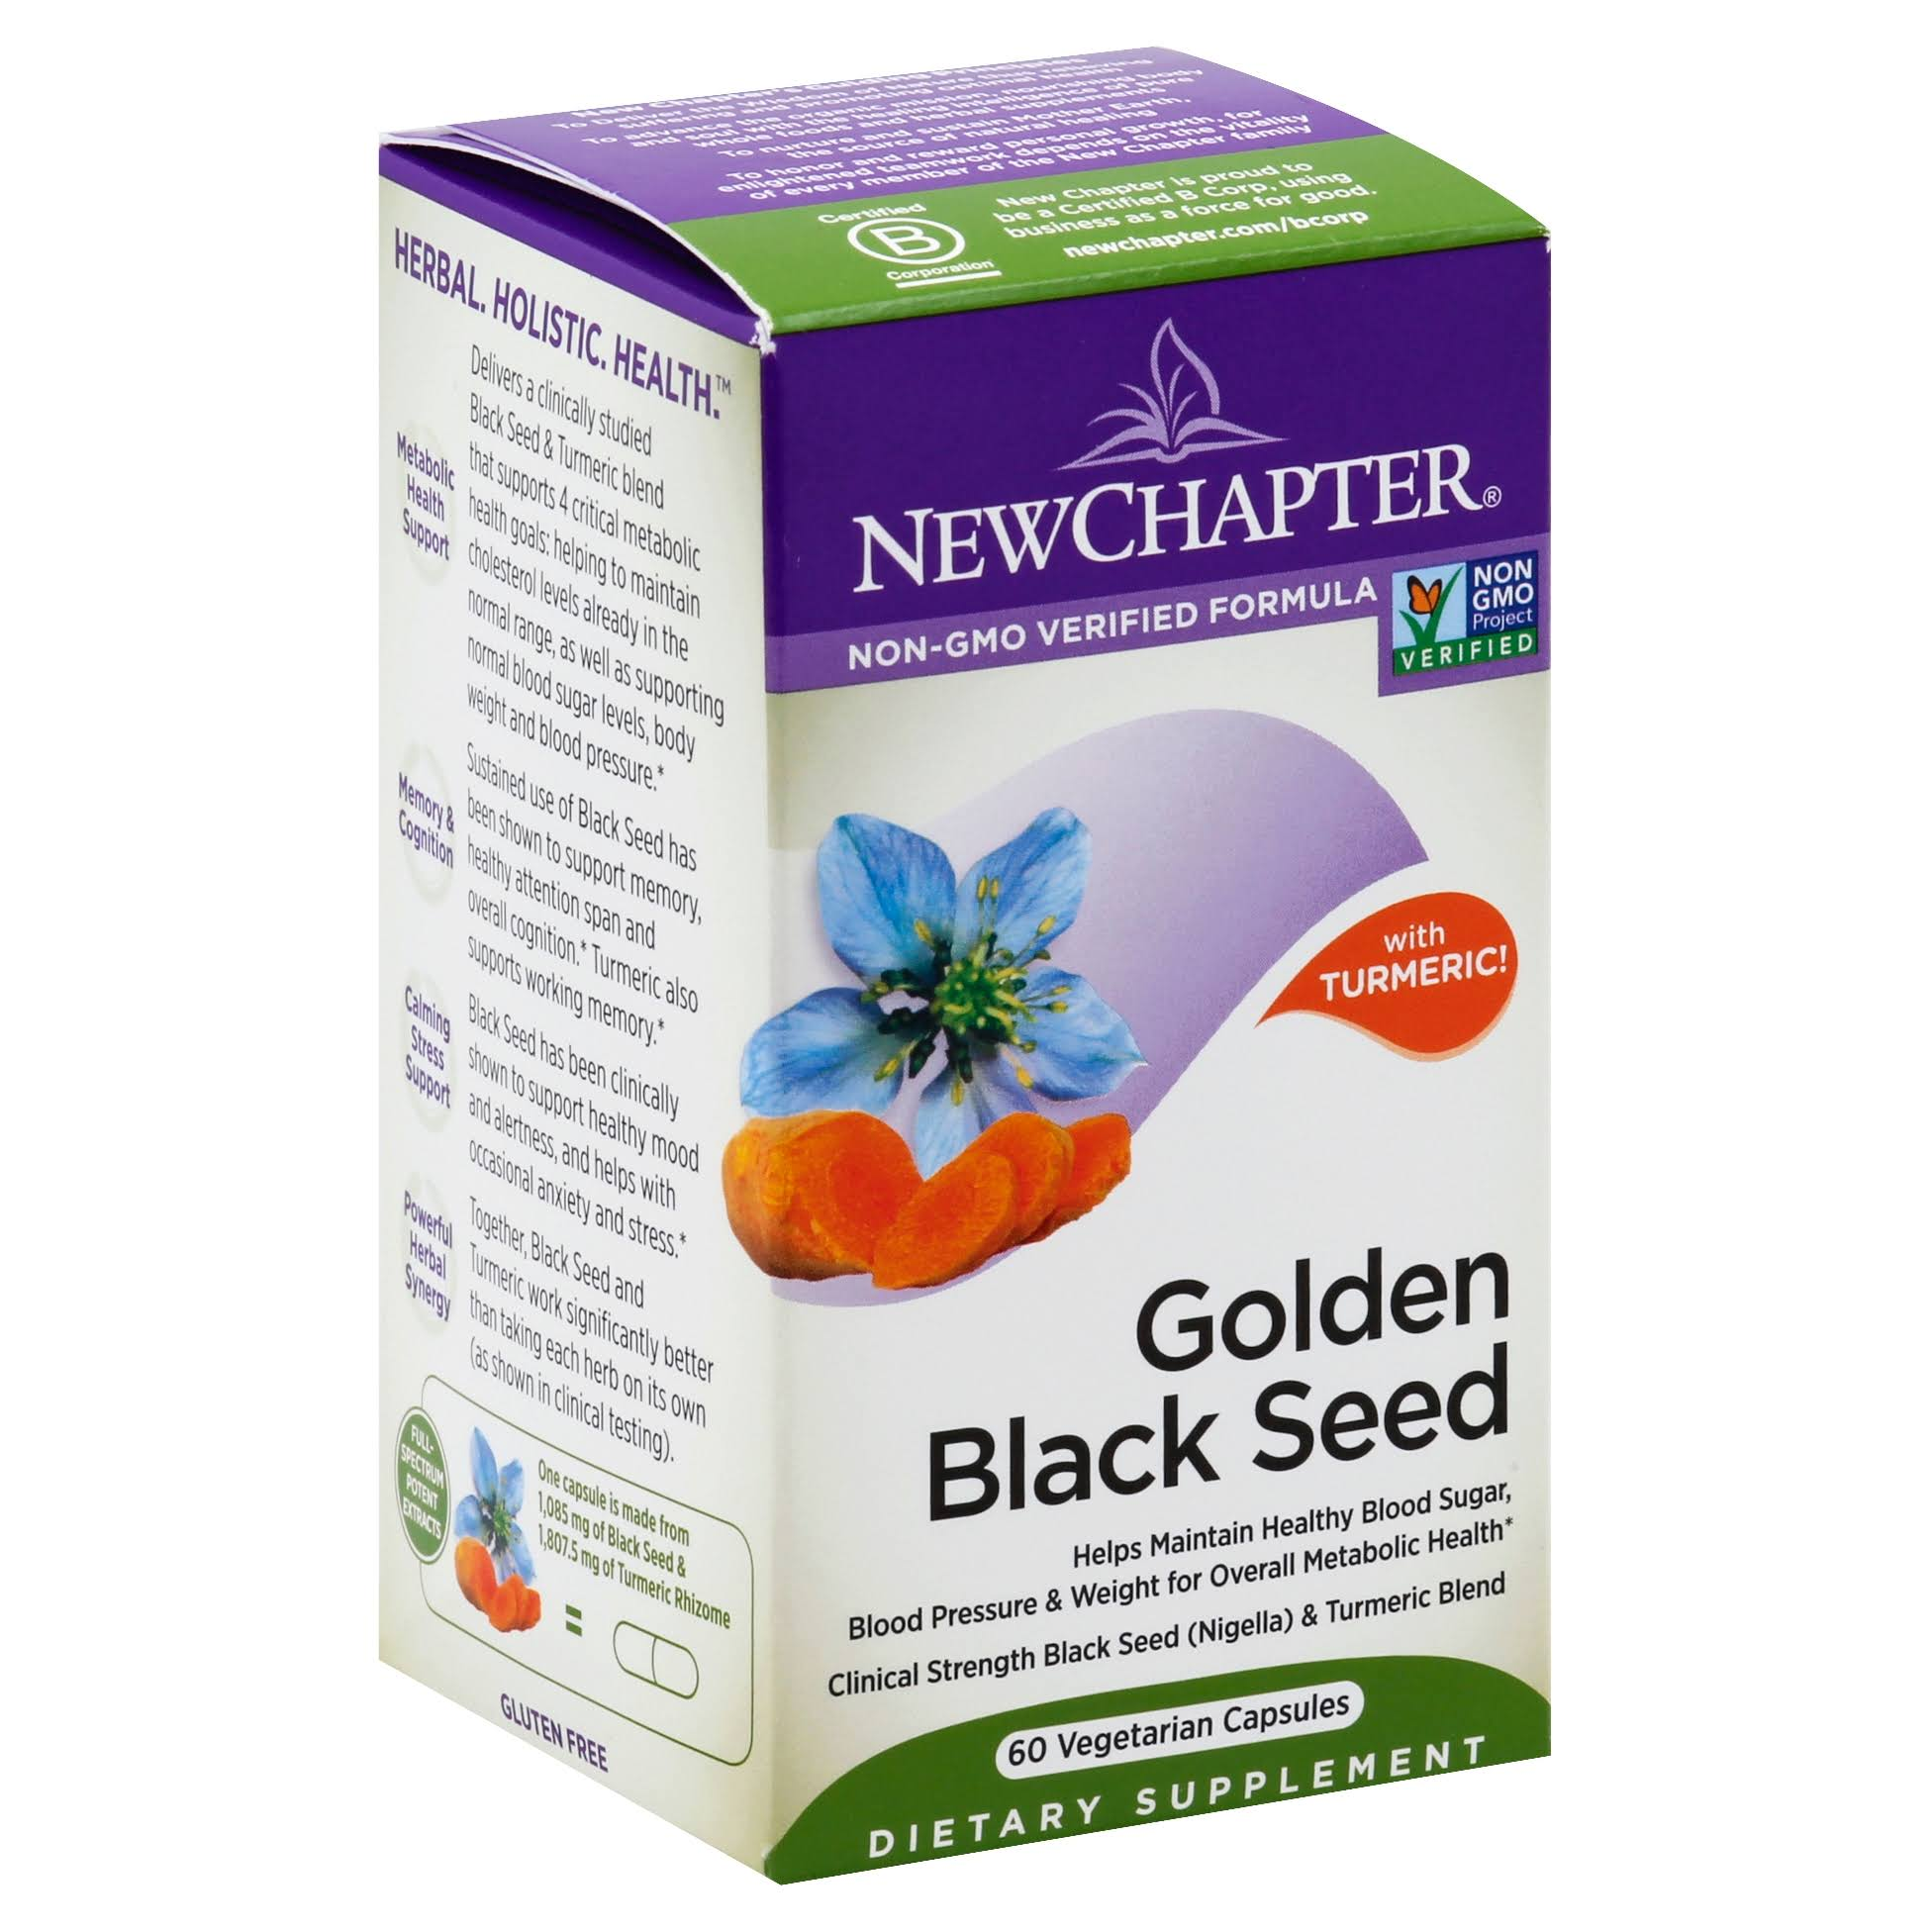 New Chapter Golden Black Seed, with Turmeric, Vegetarian Capsules - 60 capsules